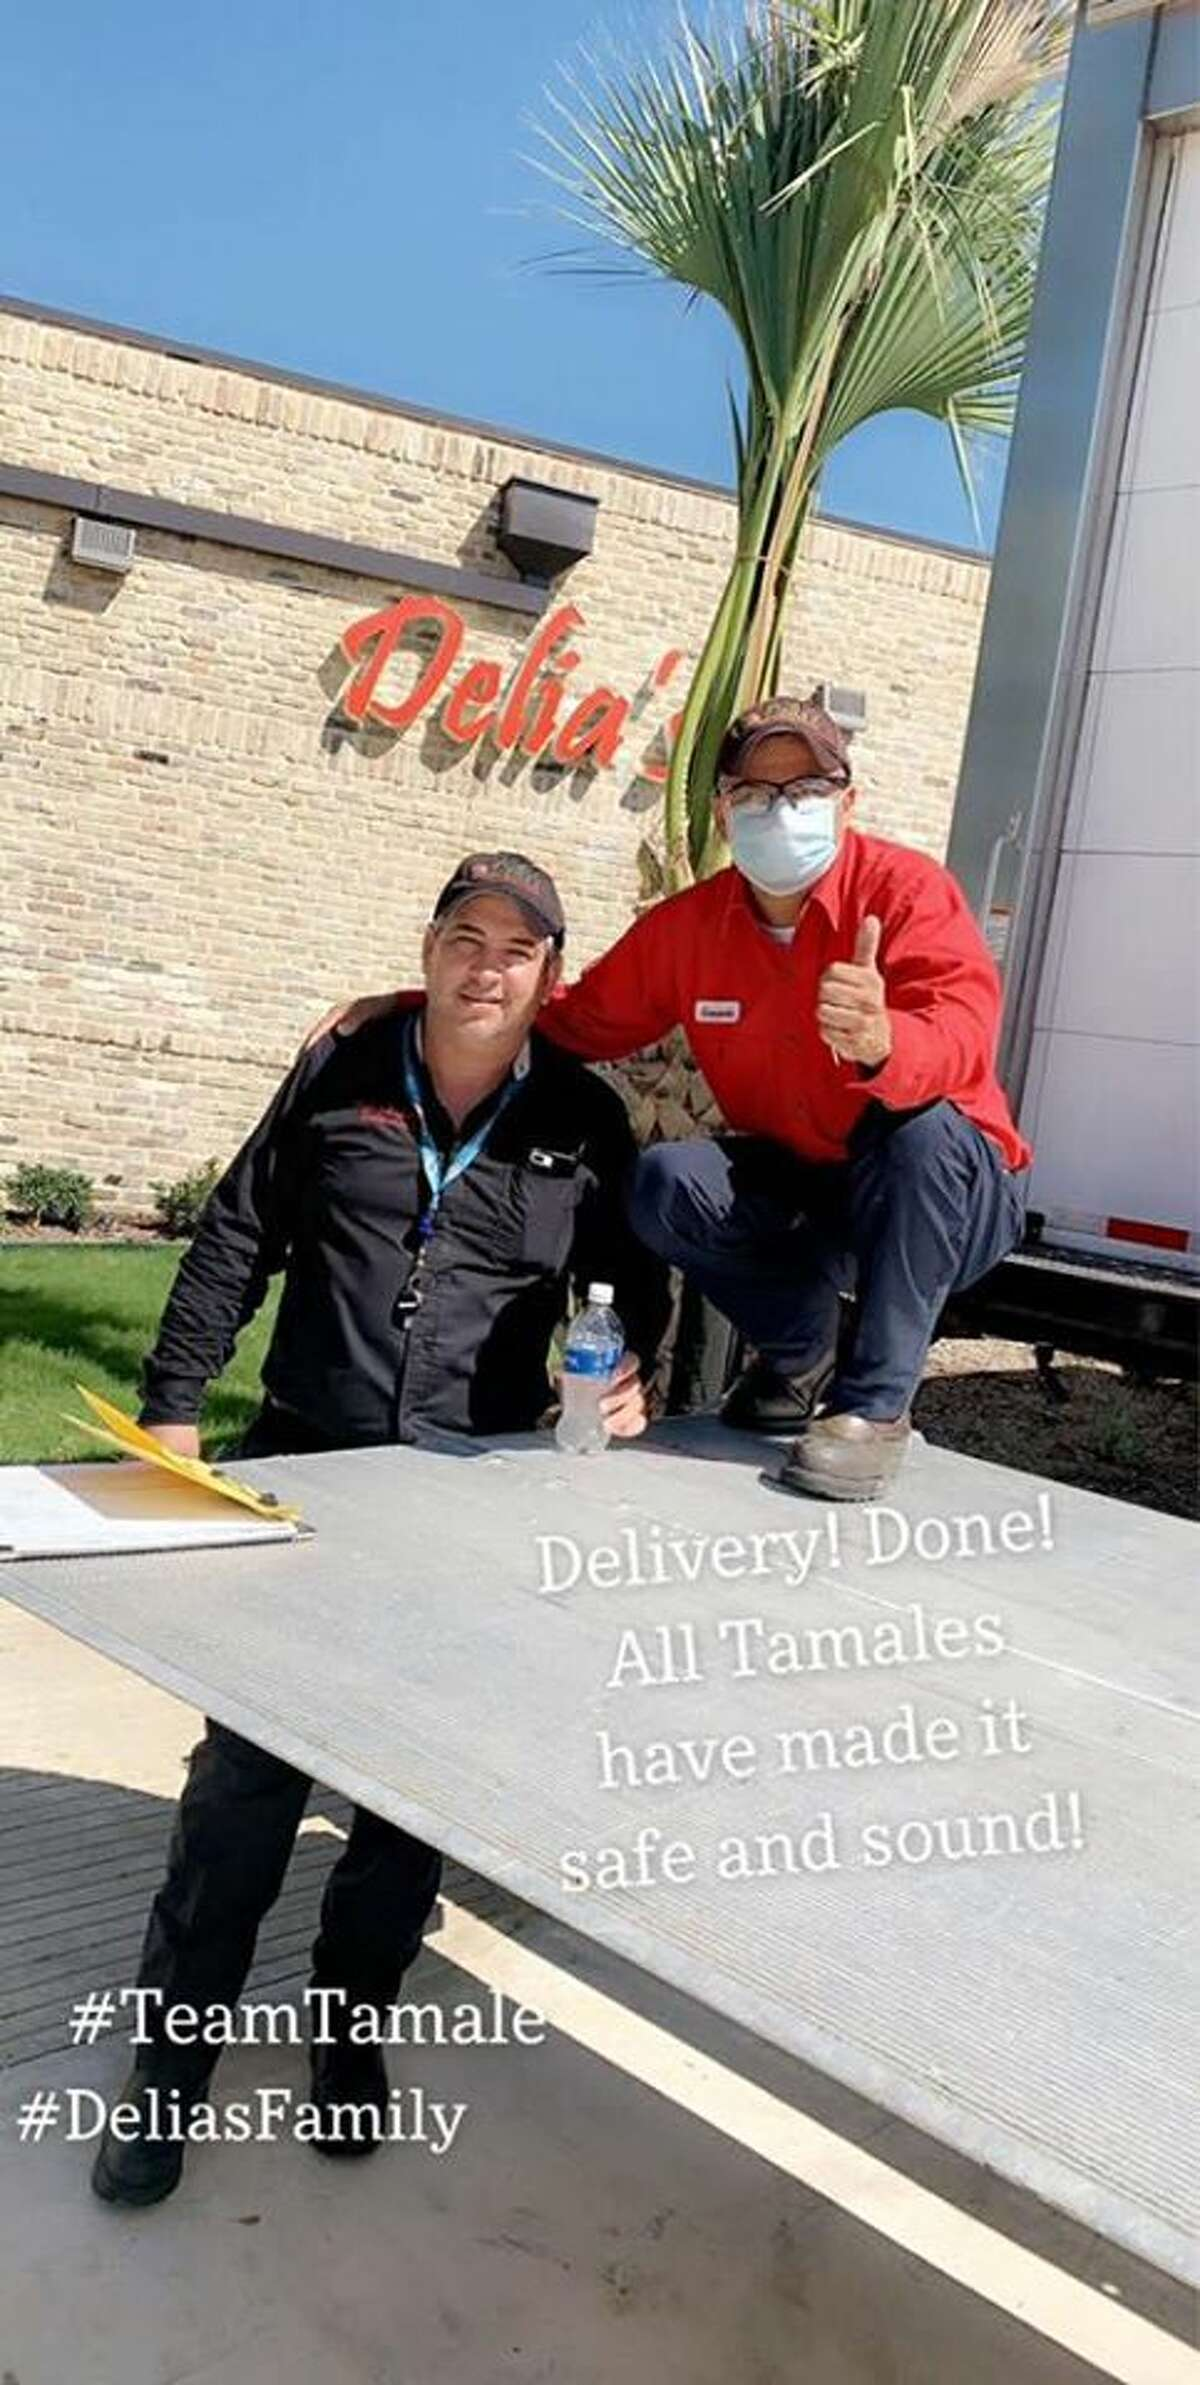 A spokesperson for Delia's Tamales said all food is served fresh at all locations. The boxes contain raw tamales, which are ready to be cooked, just like in the Rio Grande Valley.